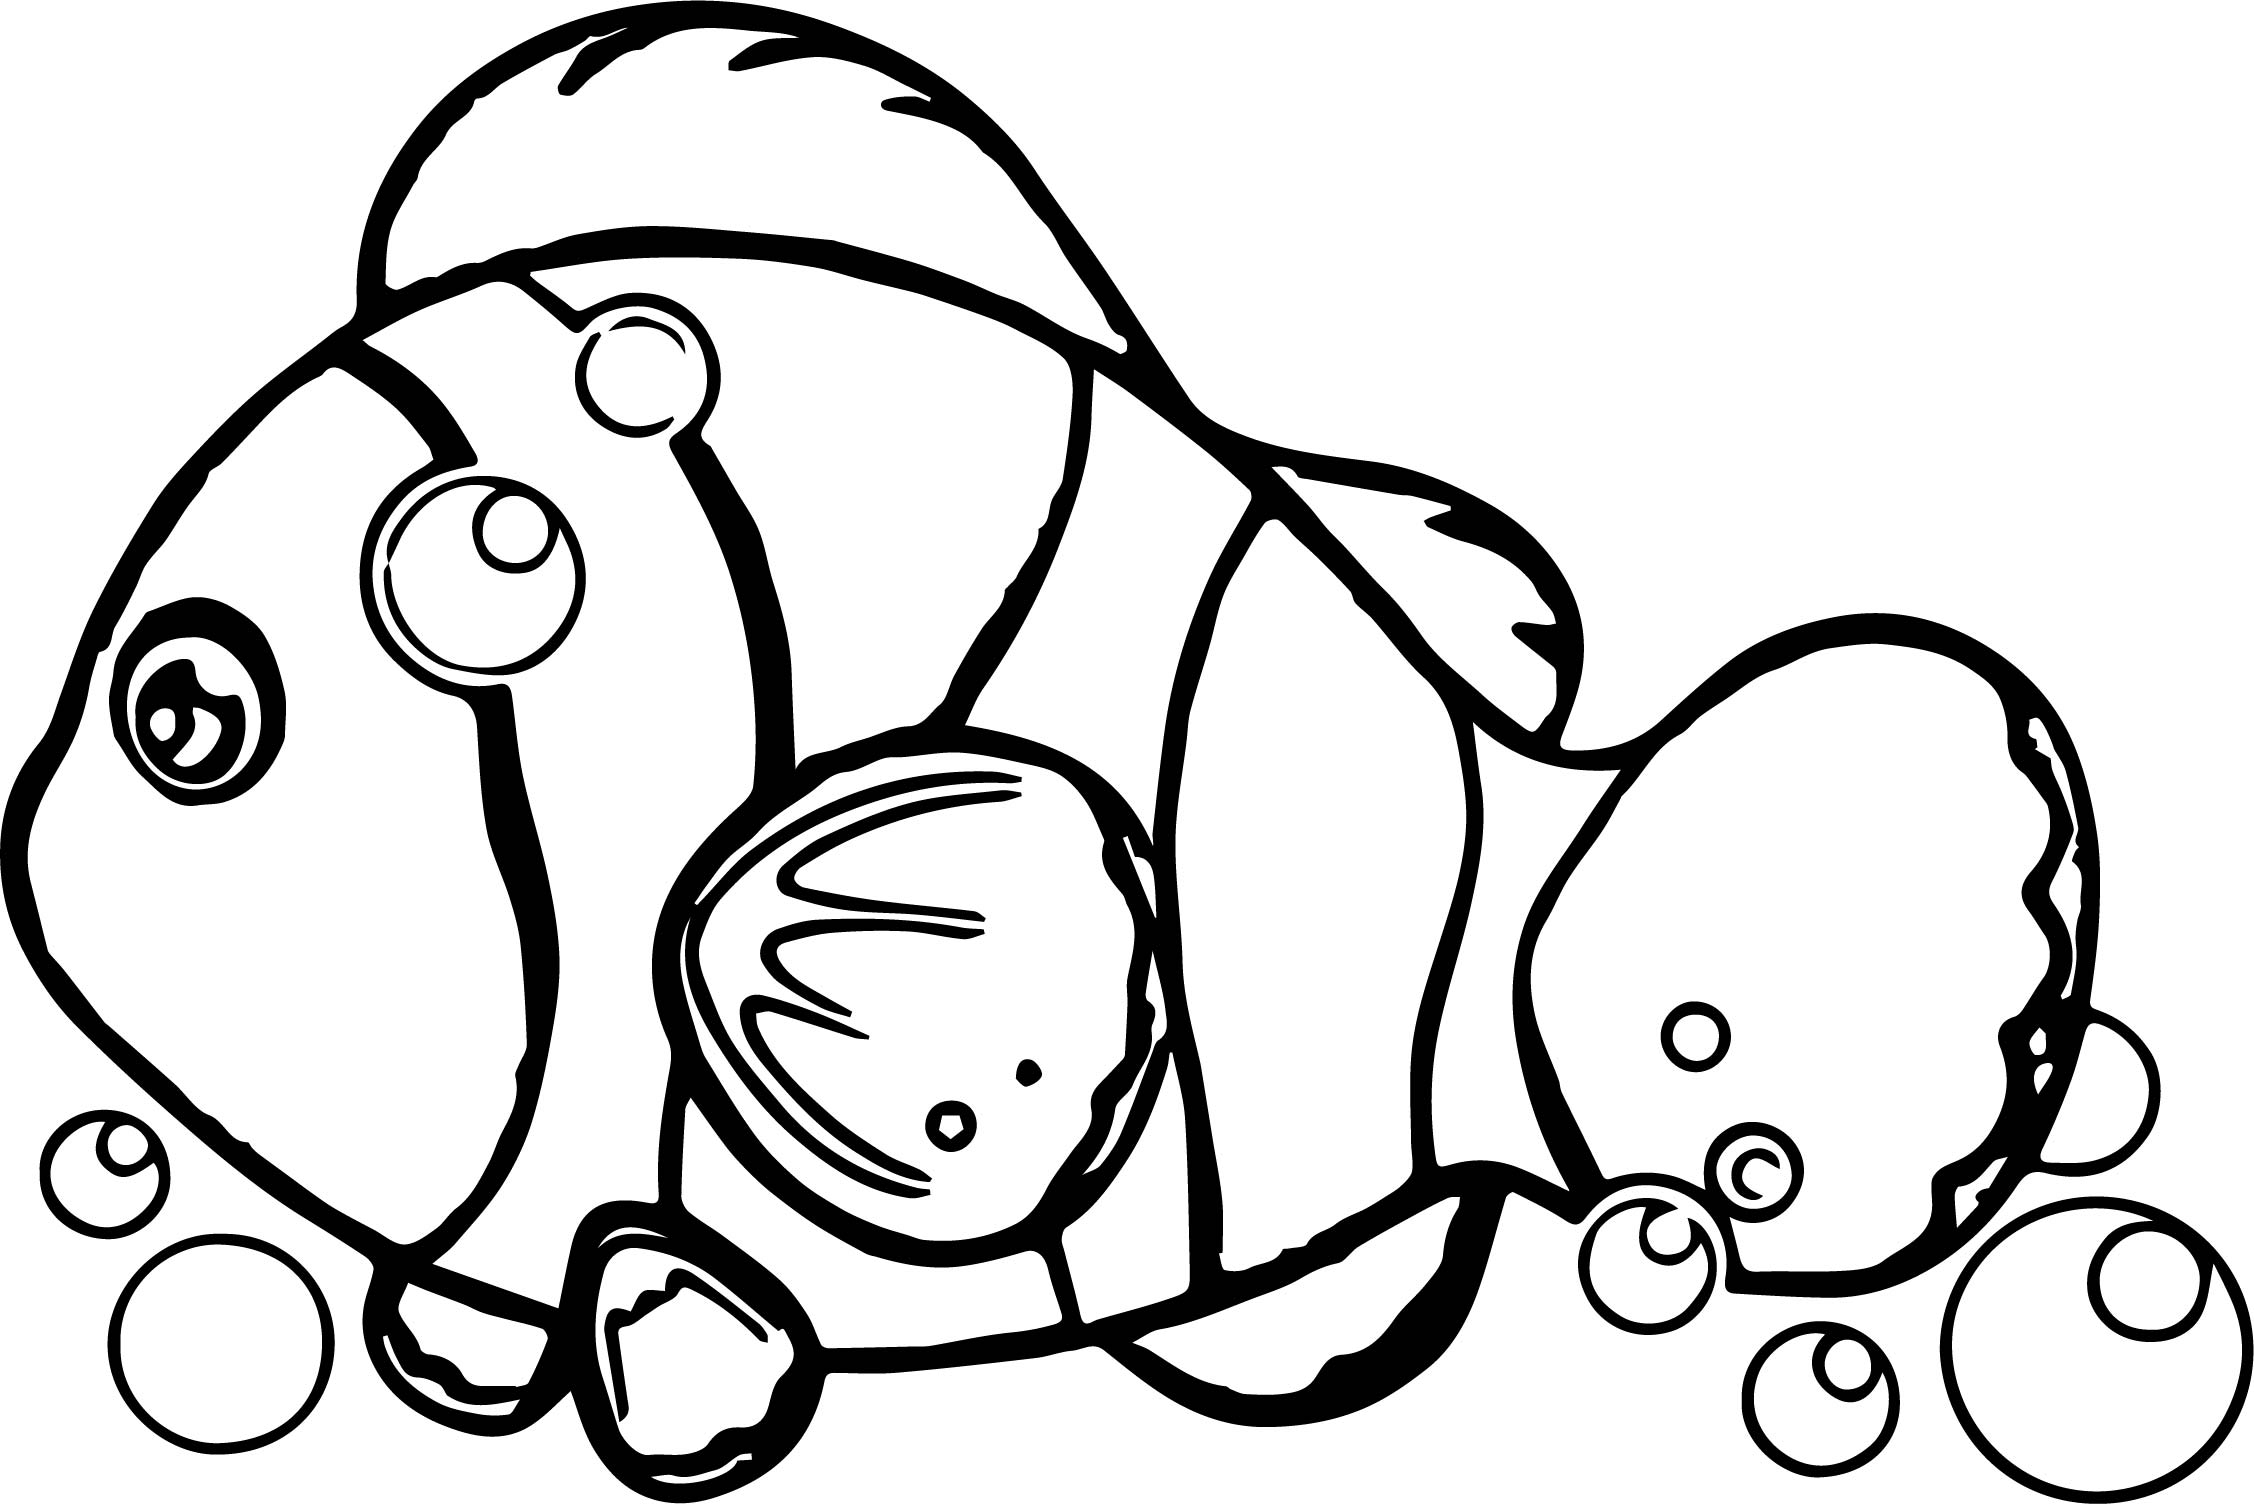 underwater fish coloring page wecoloringpage